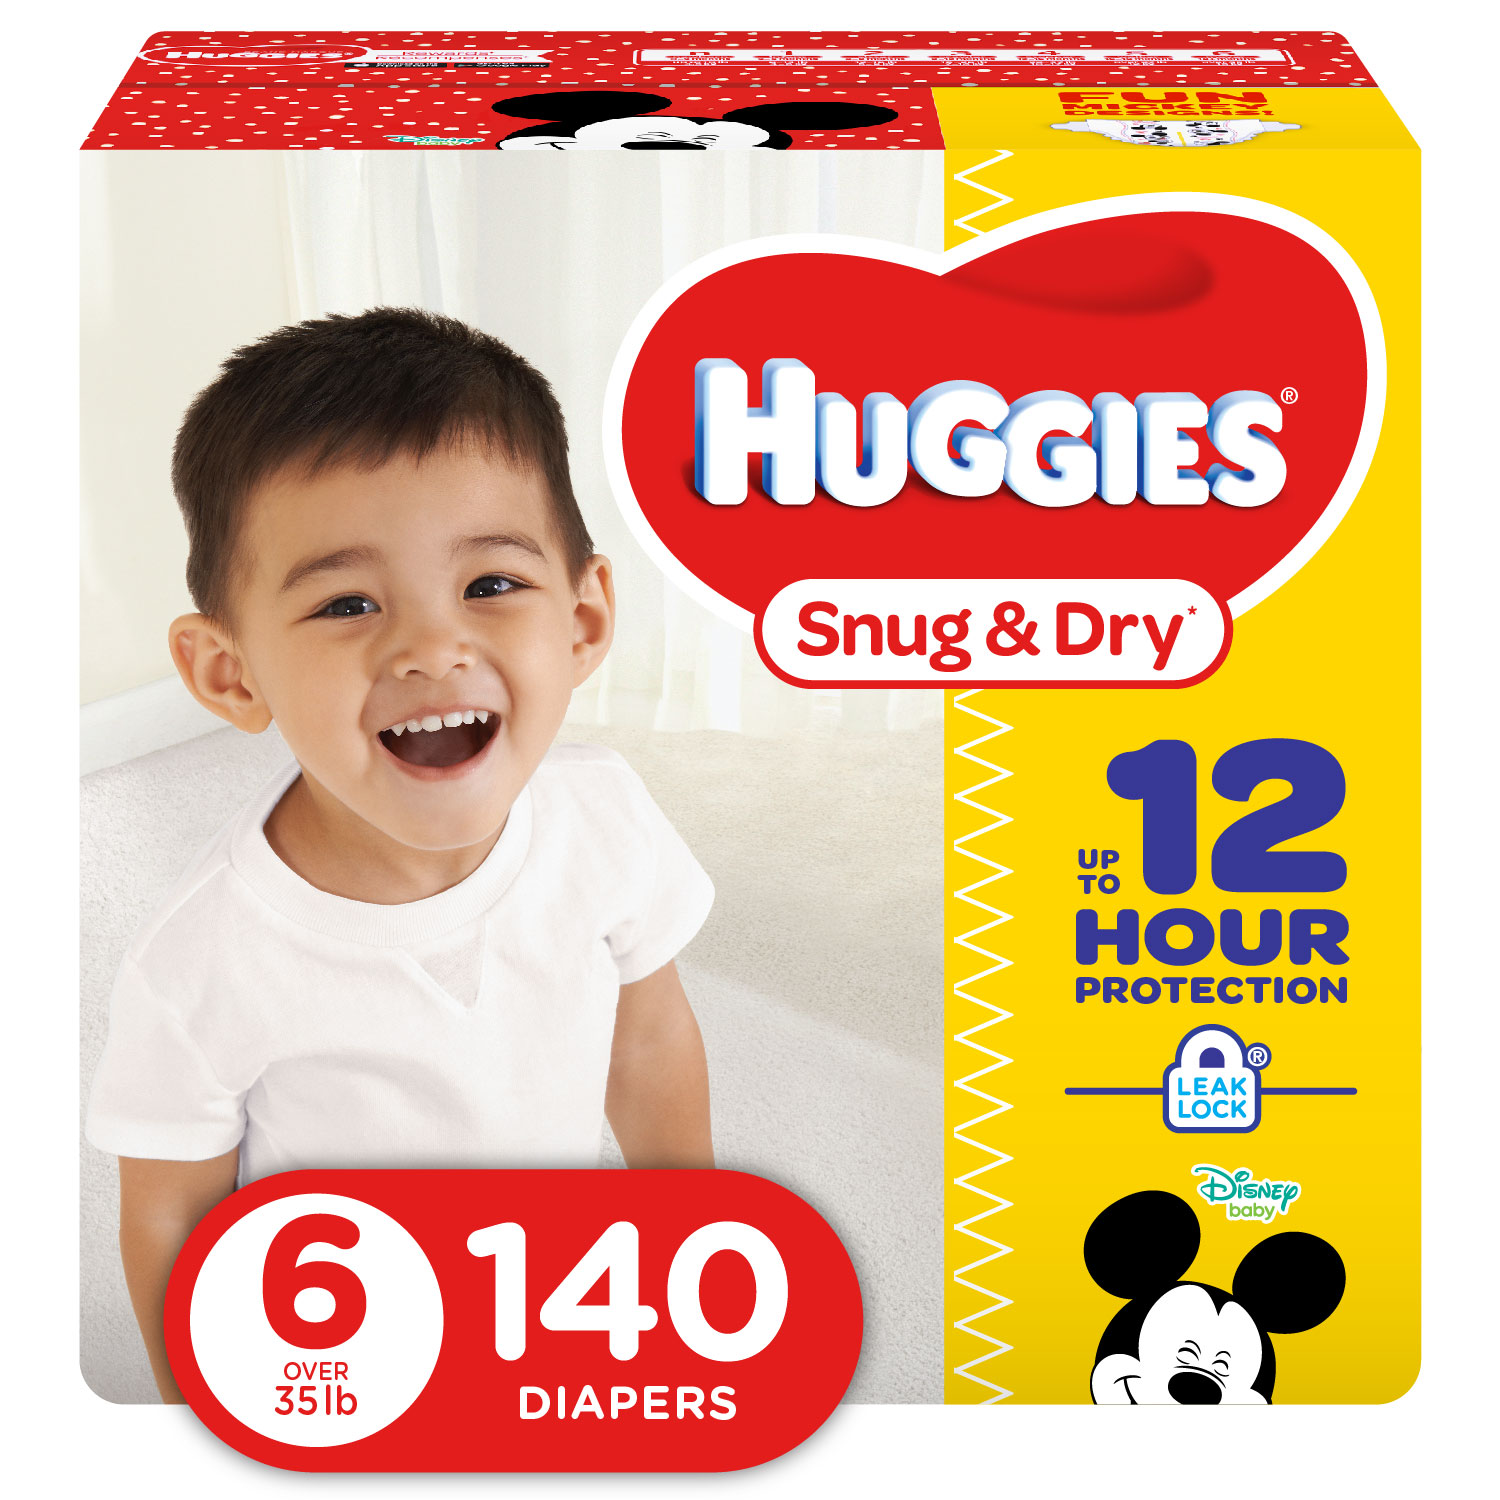 HUGGIES Snug & Dry Diapers, Size 6, 140 Diapers